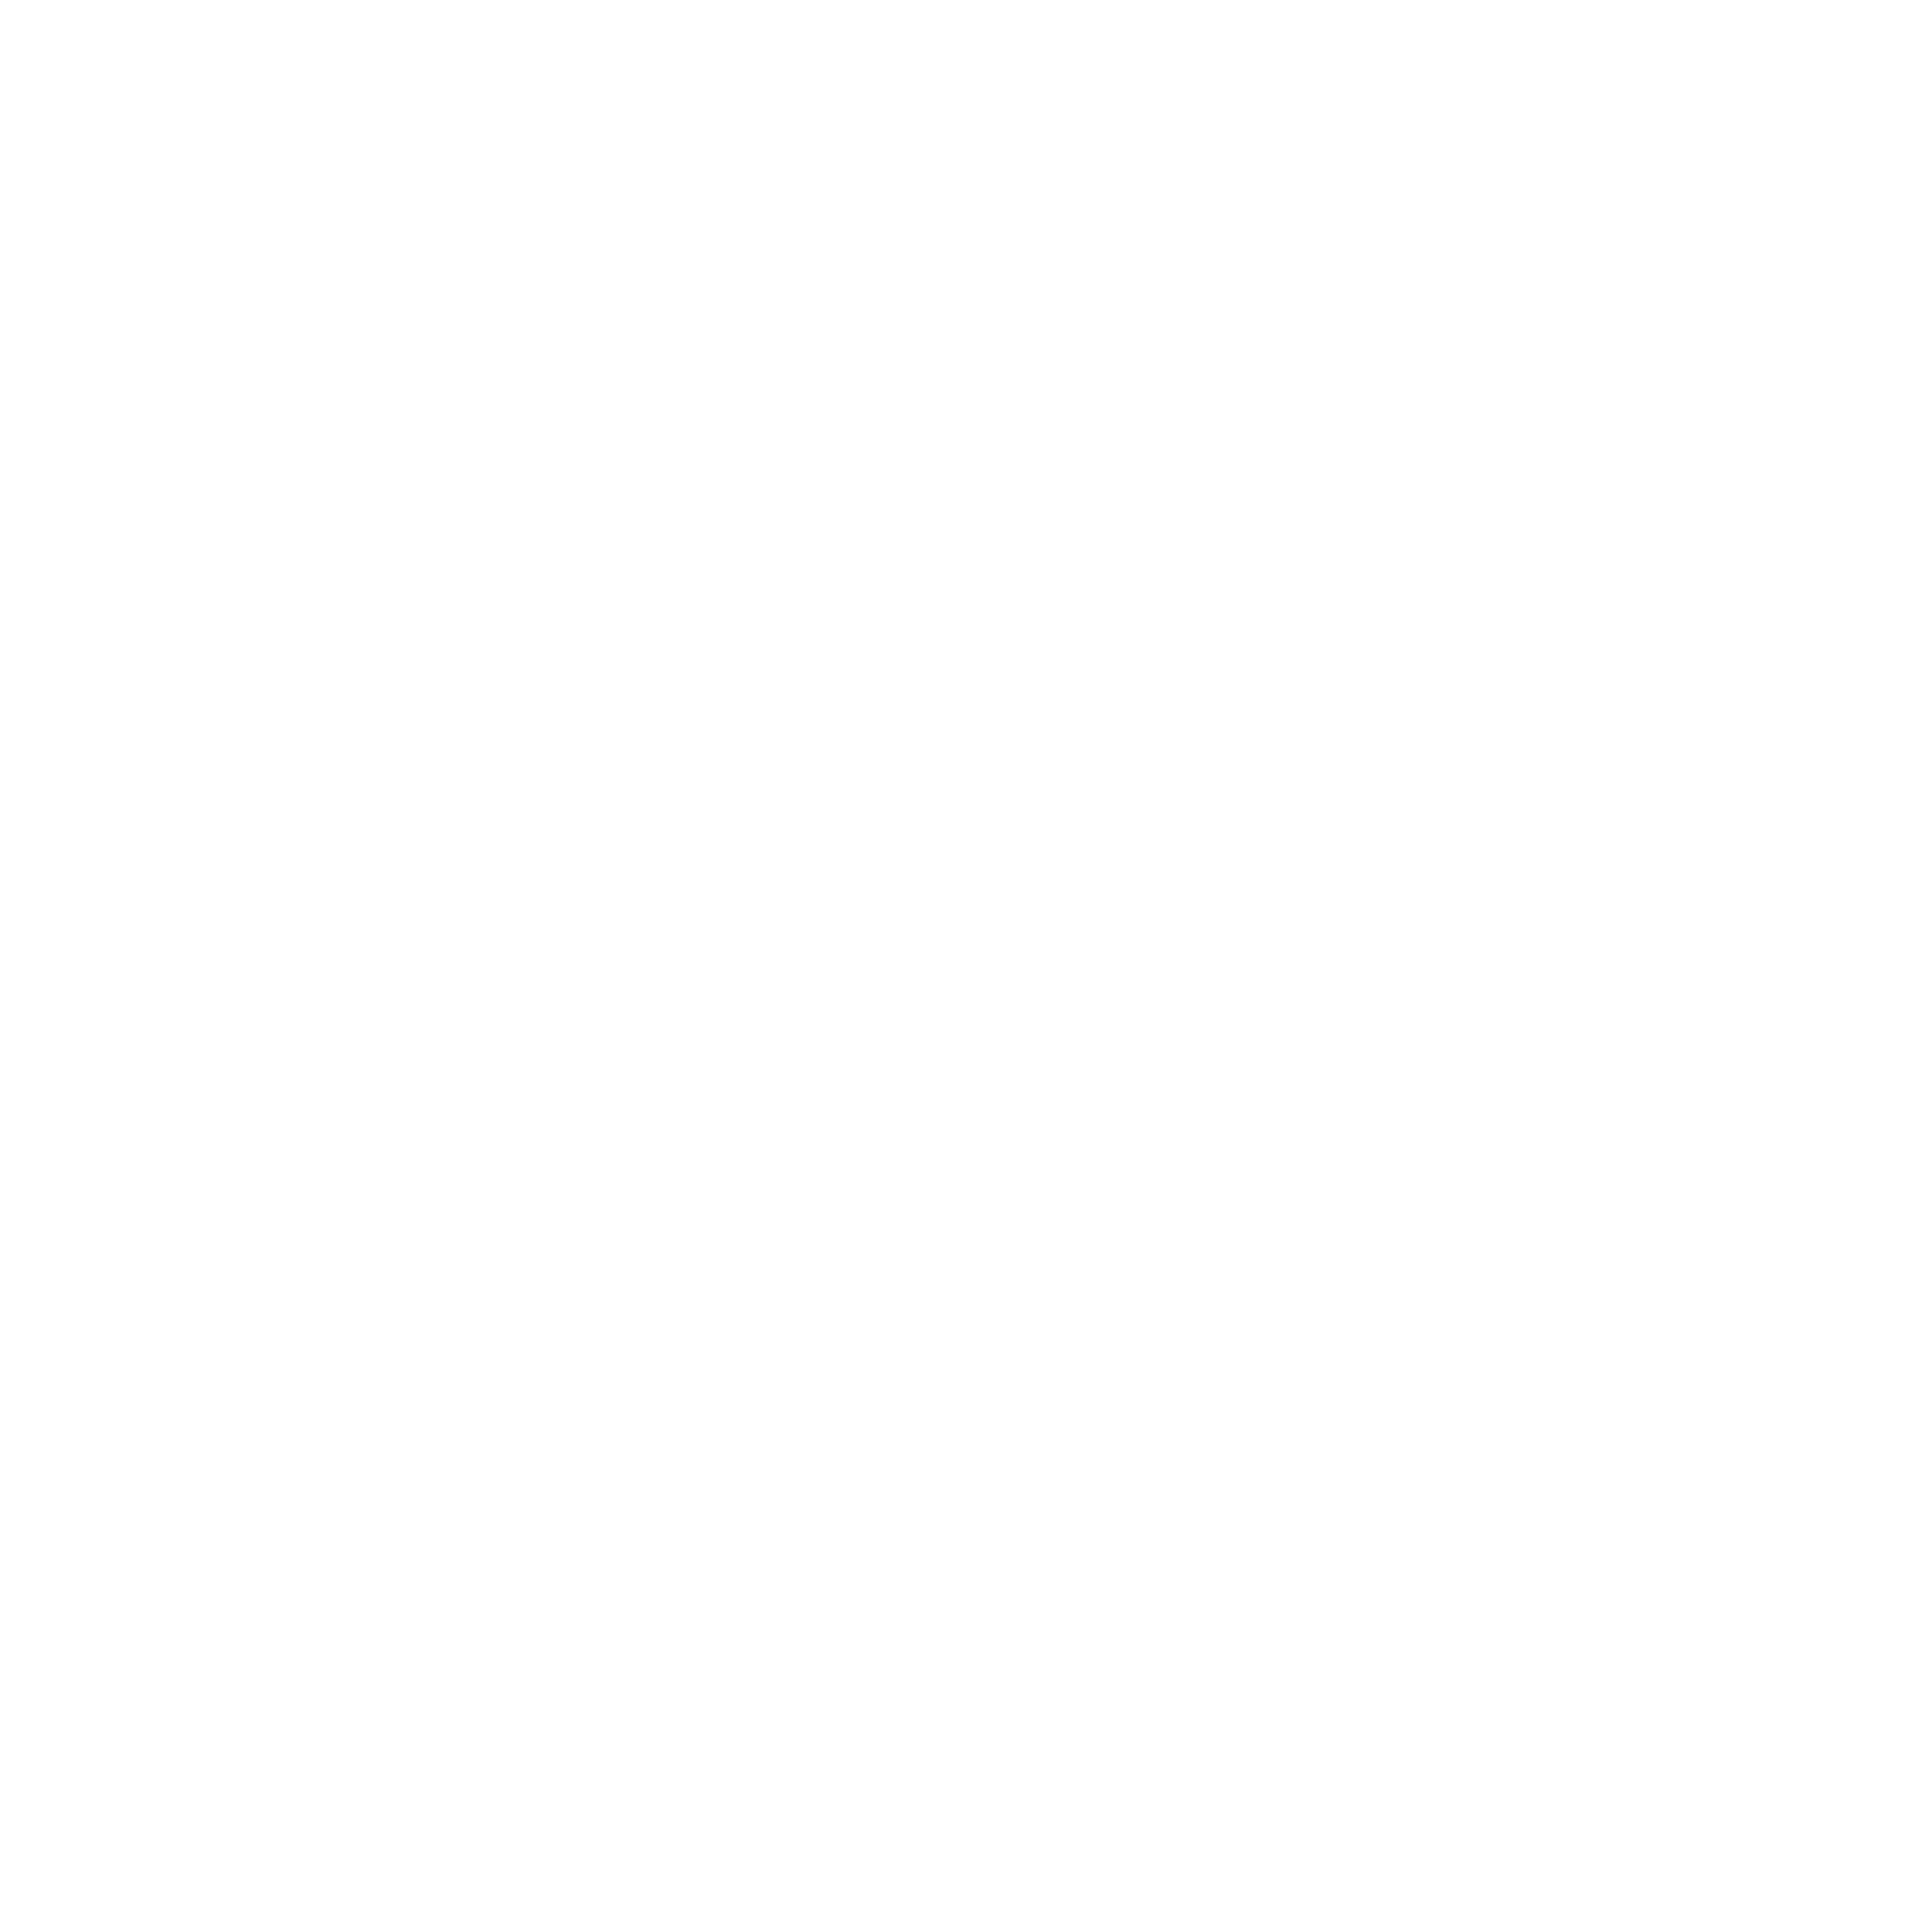 Five Points Brothers